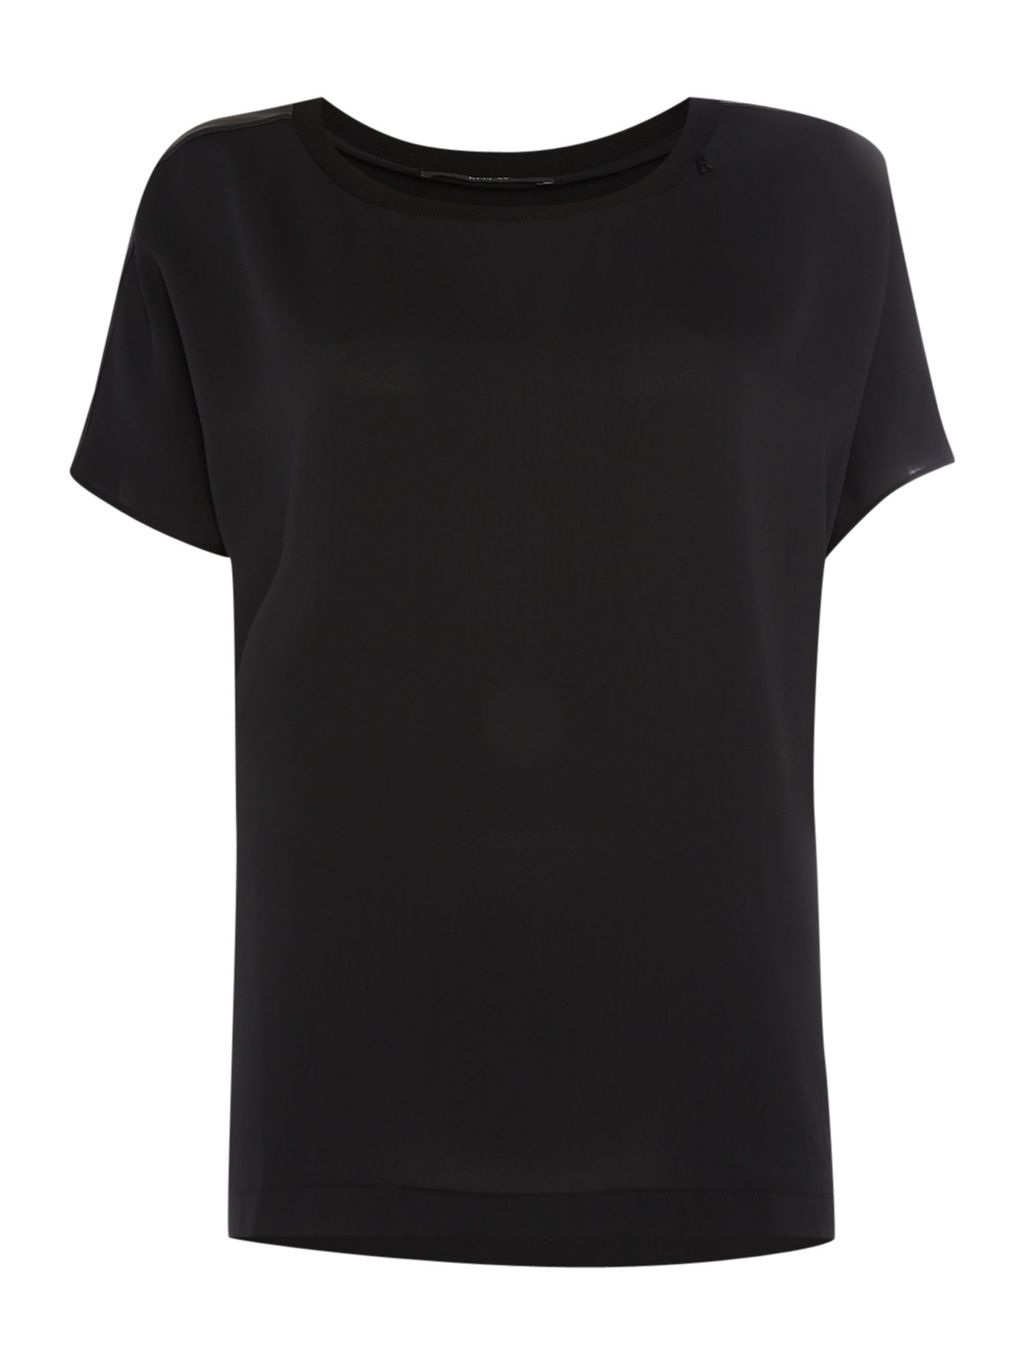 Plain Satin Blouse, Black - neckline: round neck; pattern: plain; style: t-shirt; predominant colour: black; occasions: casual, creative work; length: standard; fibres: polyester/polyamide - 100%; fit: body skimming; sleeve length: short sleeve; sleeve style: standard; pattern type: fabric; texture group: jersey - stretchy/drapey; season: s/s 2016; wardrobe: basic